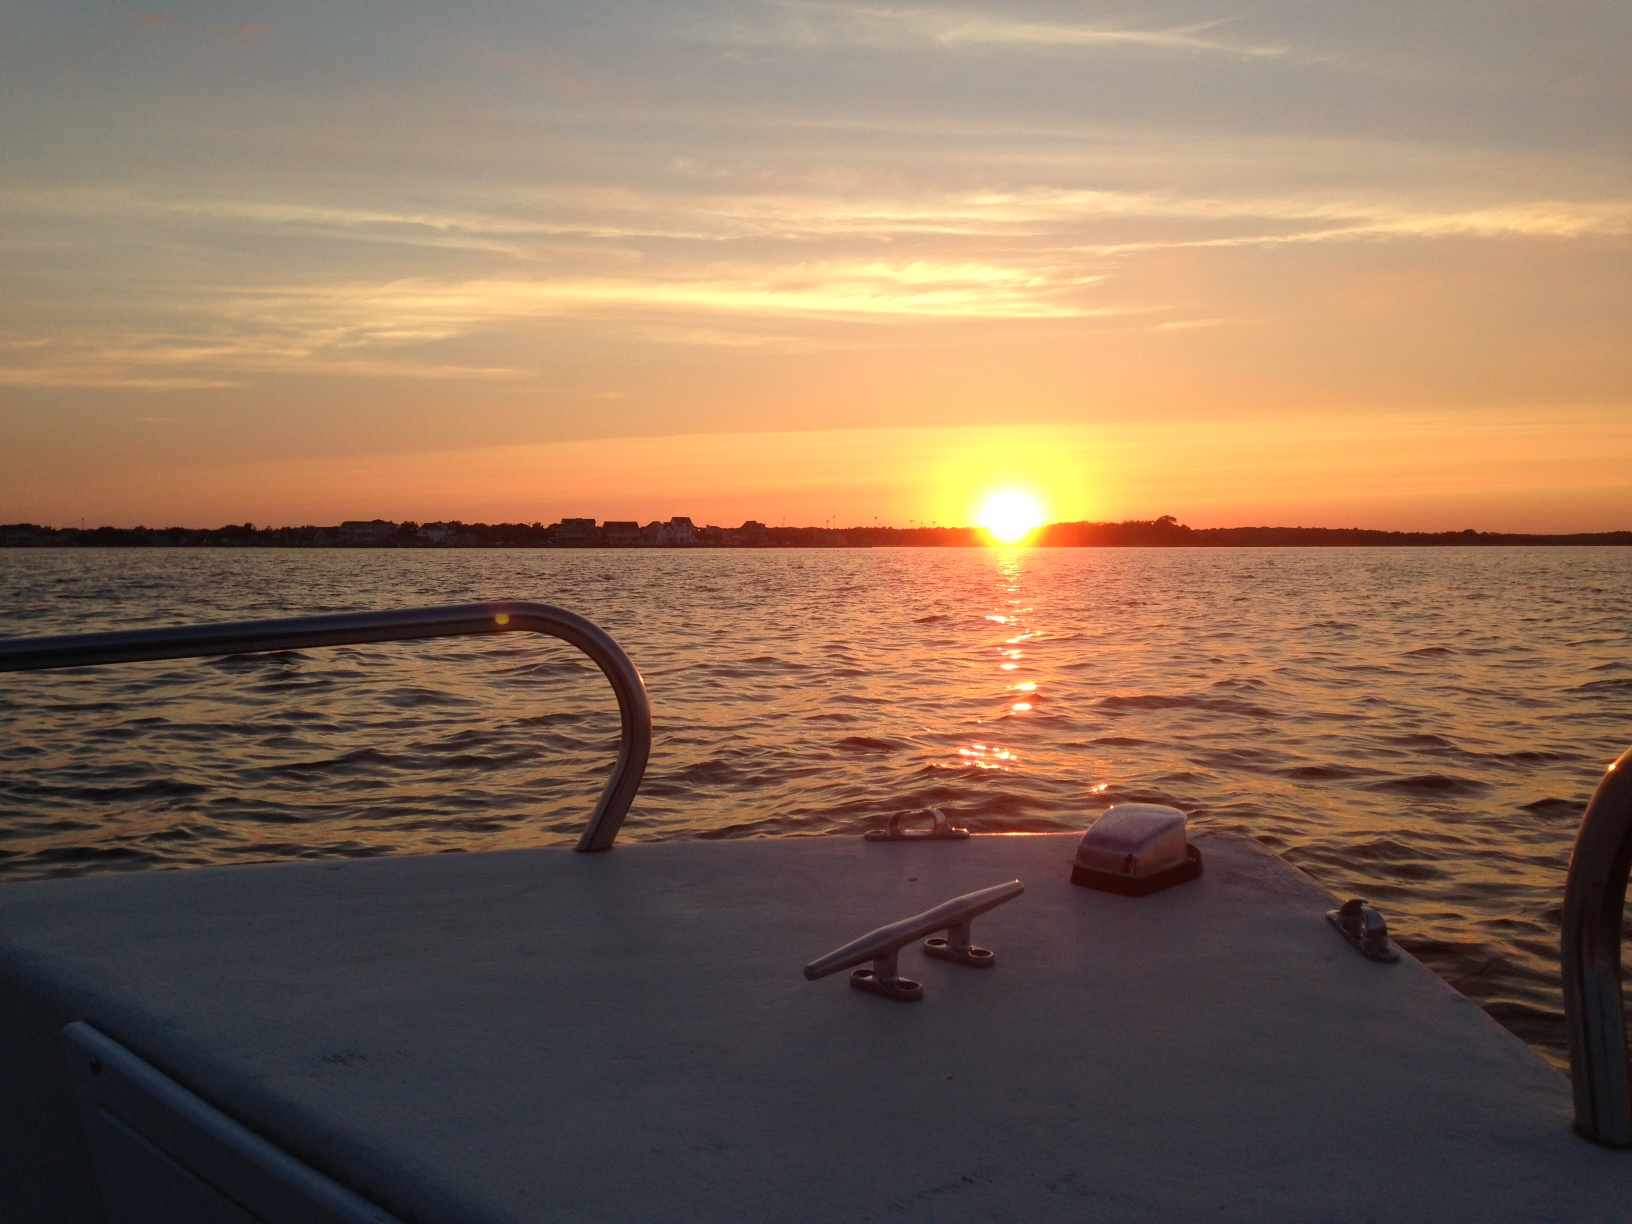 The sun sets over Barnegat Bay in Brick, N.J. (Photo: Daniel Nee)